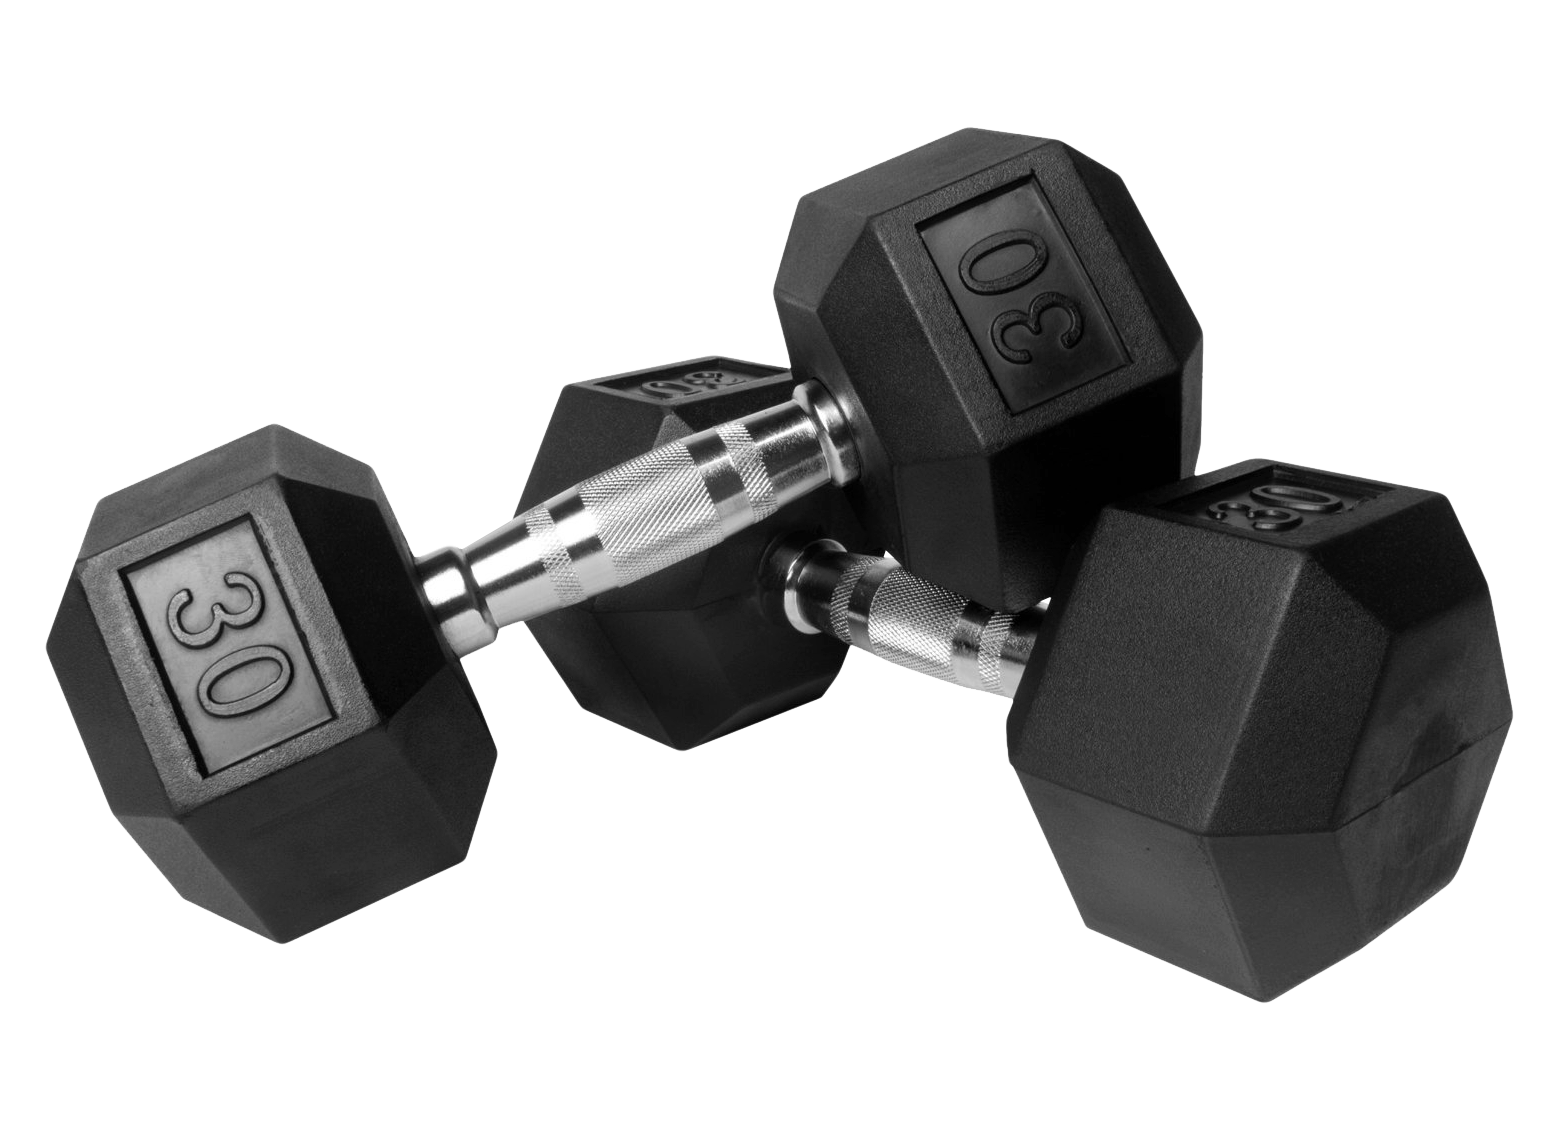 Dumbbells images free download. Dumbbell png clipart freeuse stock